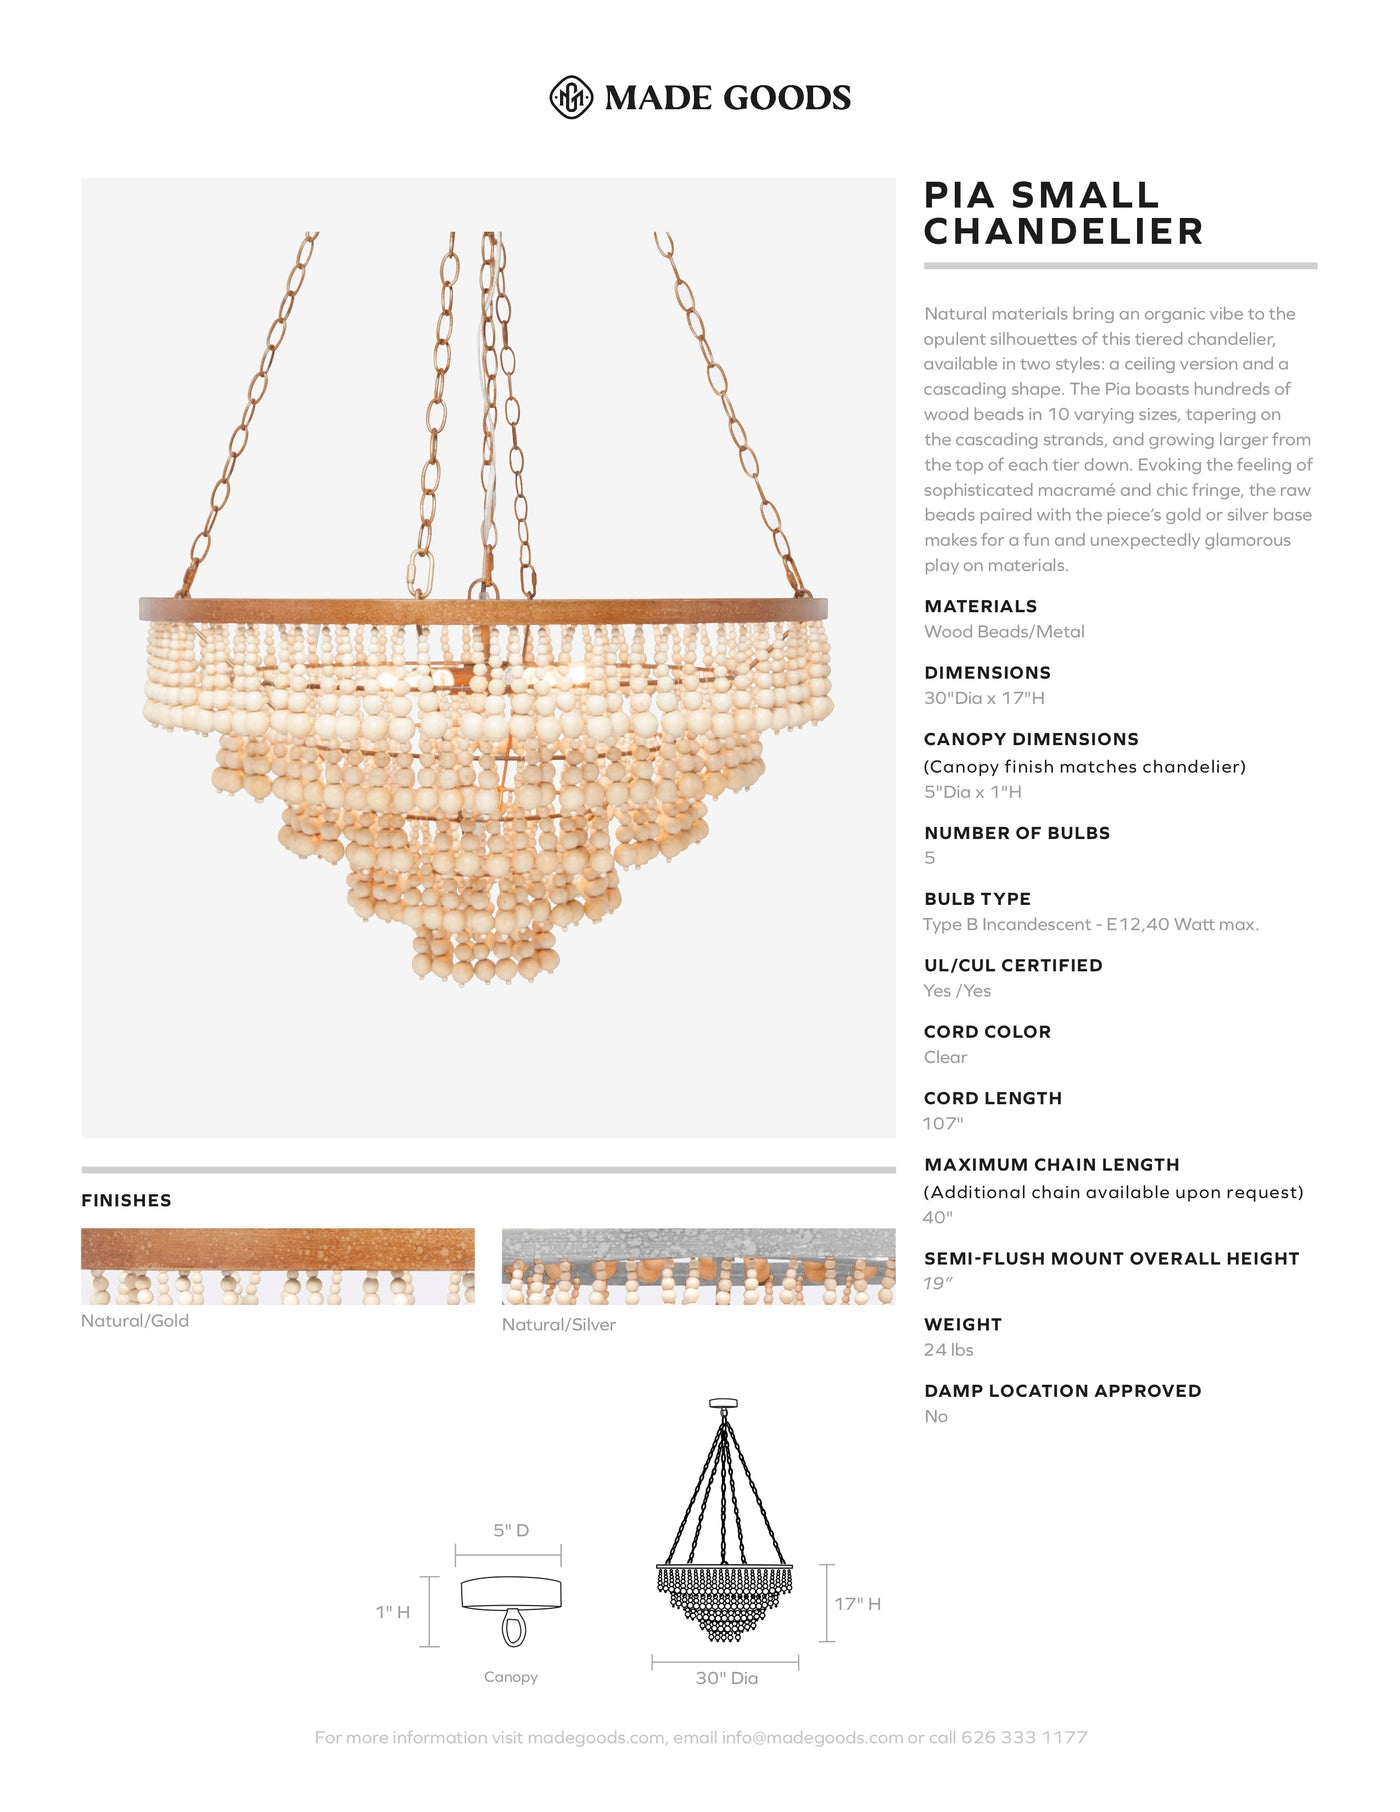 Made Goods Pia Ceiling Chandelier Tear Sheet